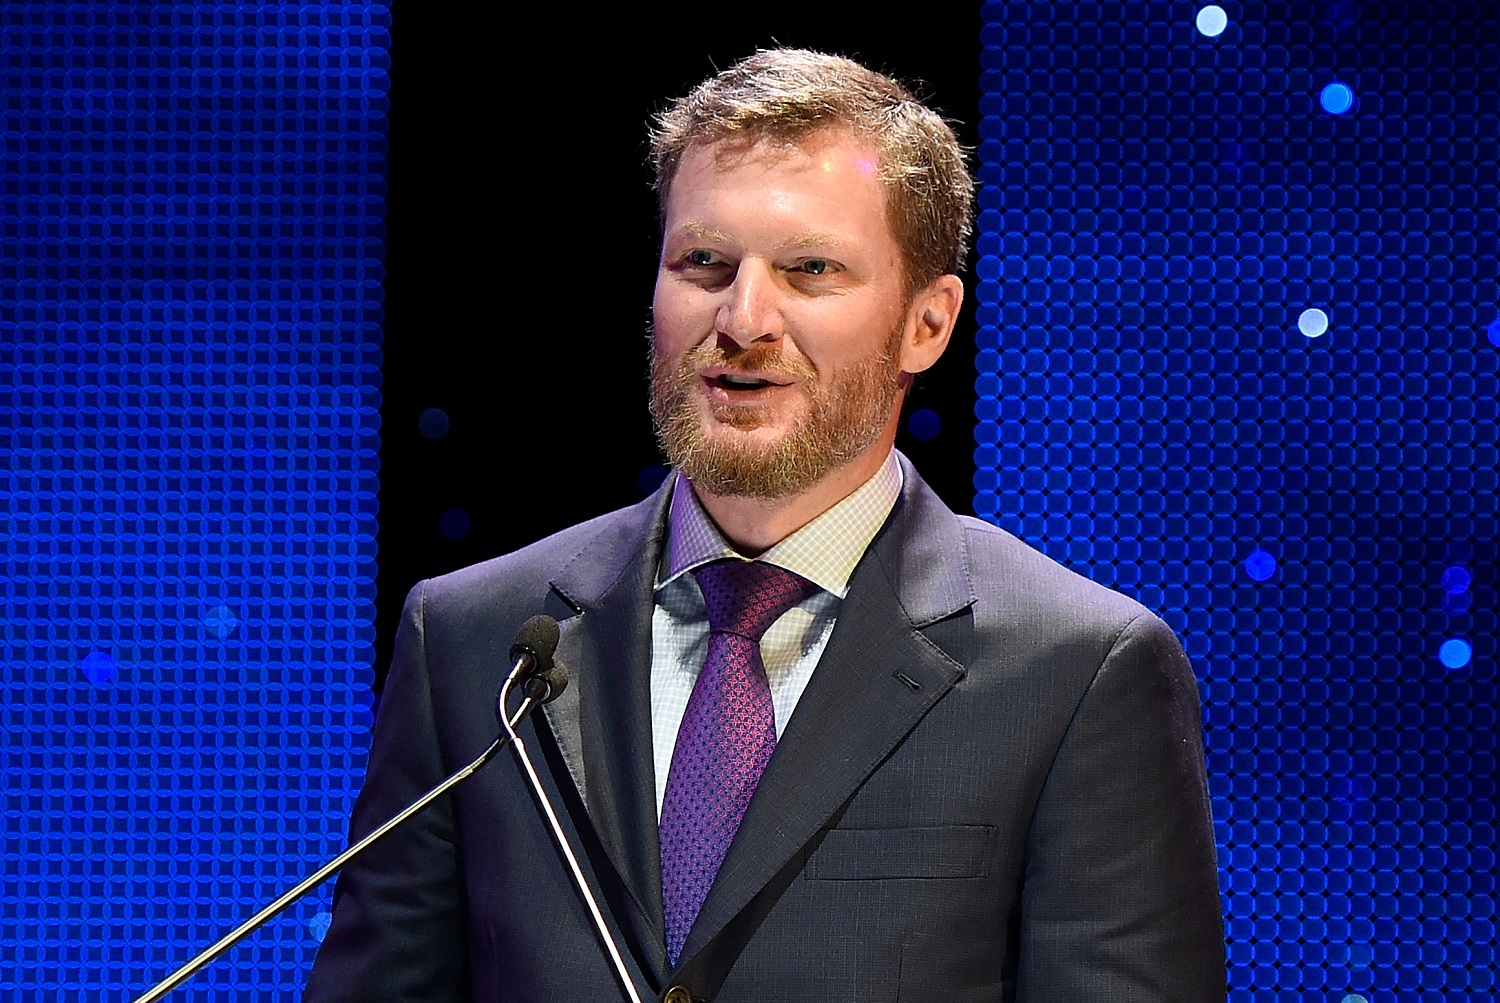 Dale Earnhardt Jr. is adding some eNASCAR racing to his 2021 schedule.